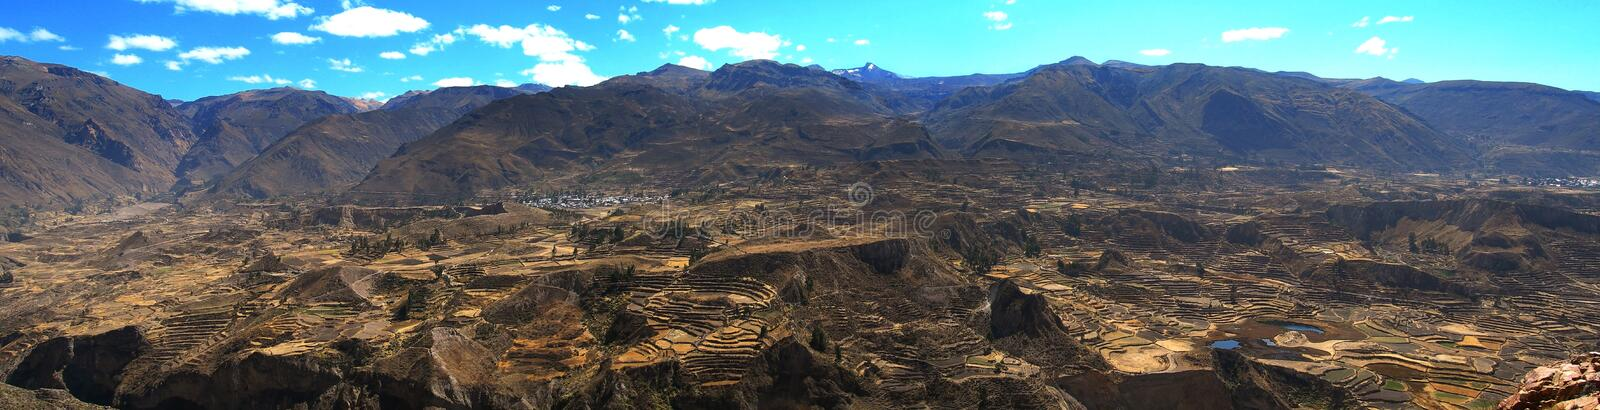 Colca Valley Landscape Panorama Terraces Peru stock photography